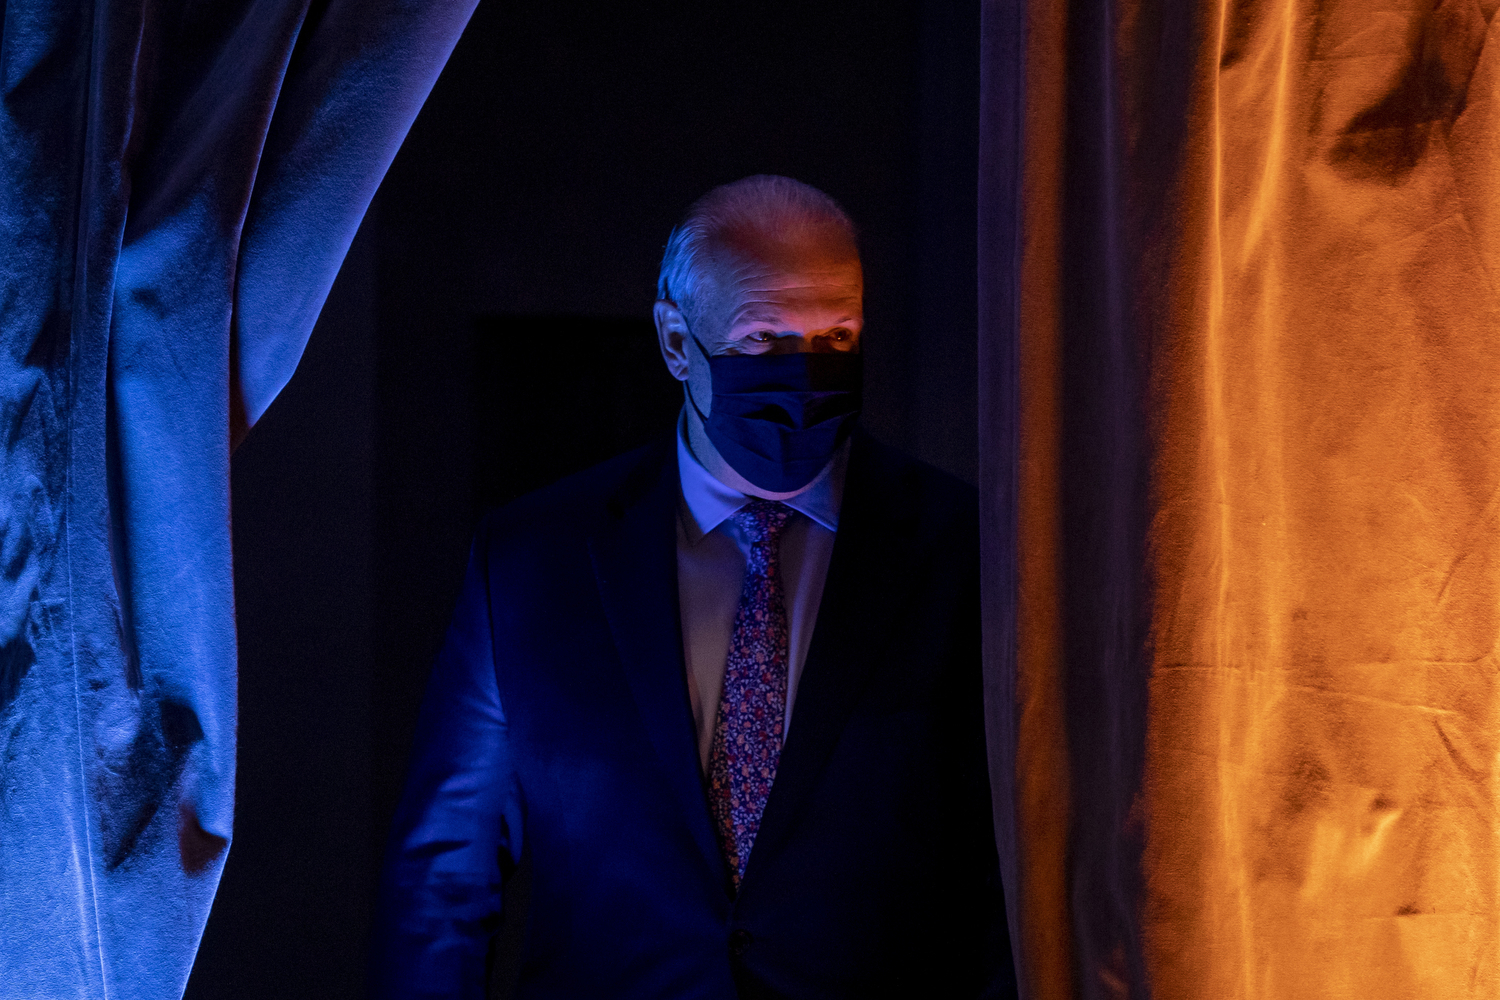 B.C. NDP Leader John Horgan at his campaign headquarters at a hotel in Vancouver on Oct. 24, 2020, after his party was projected to form a majority provincial government. (Ben Nelms/CBC Vancouver)